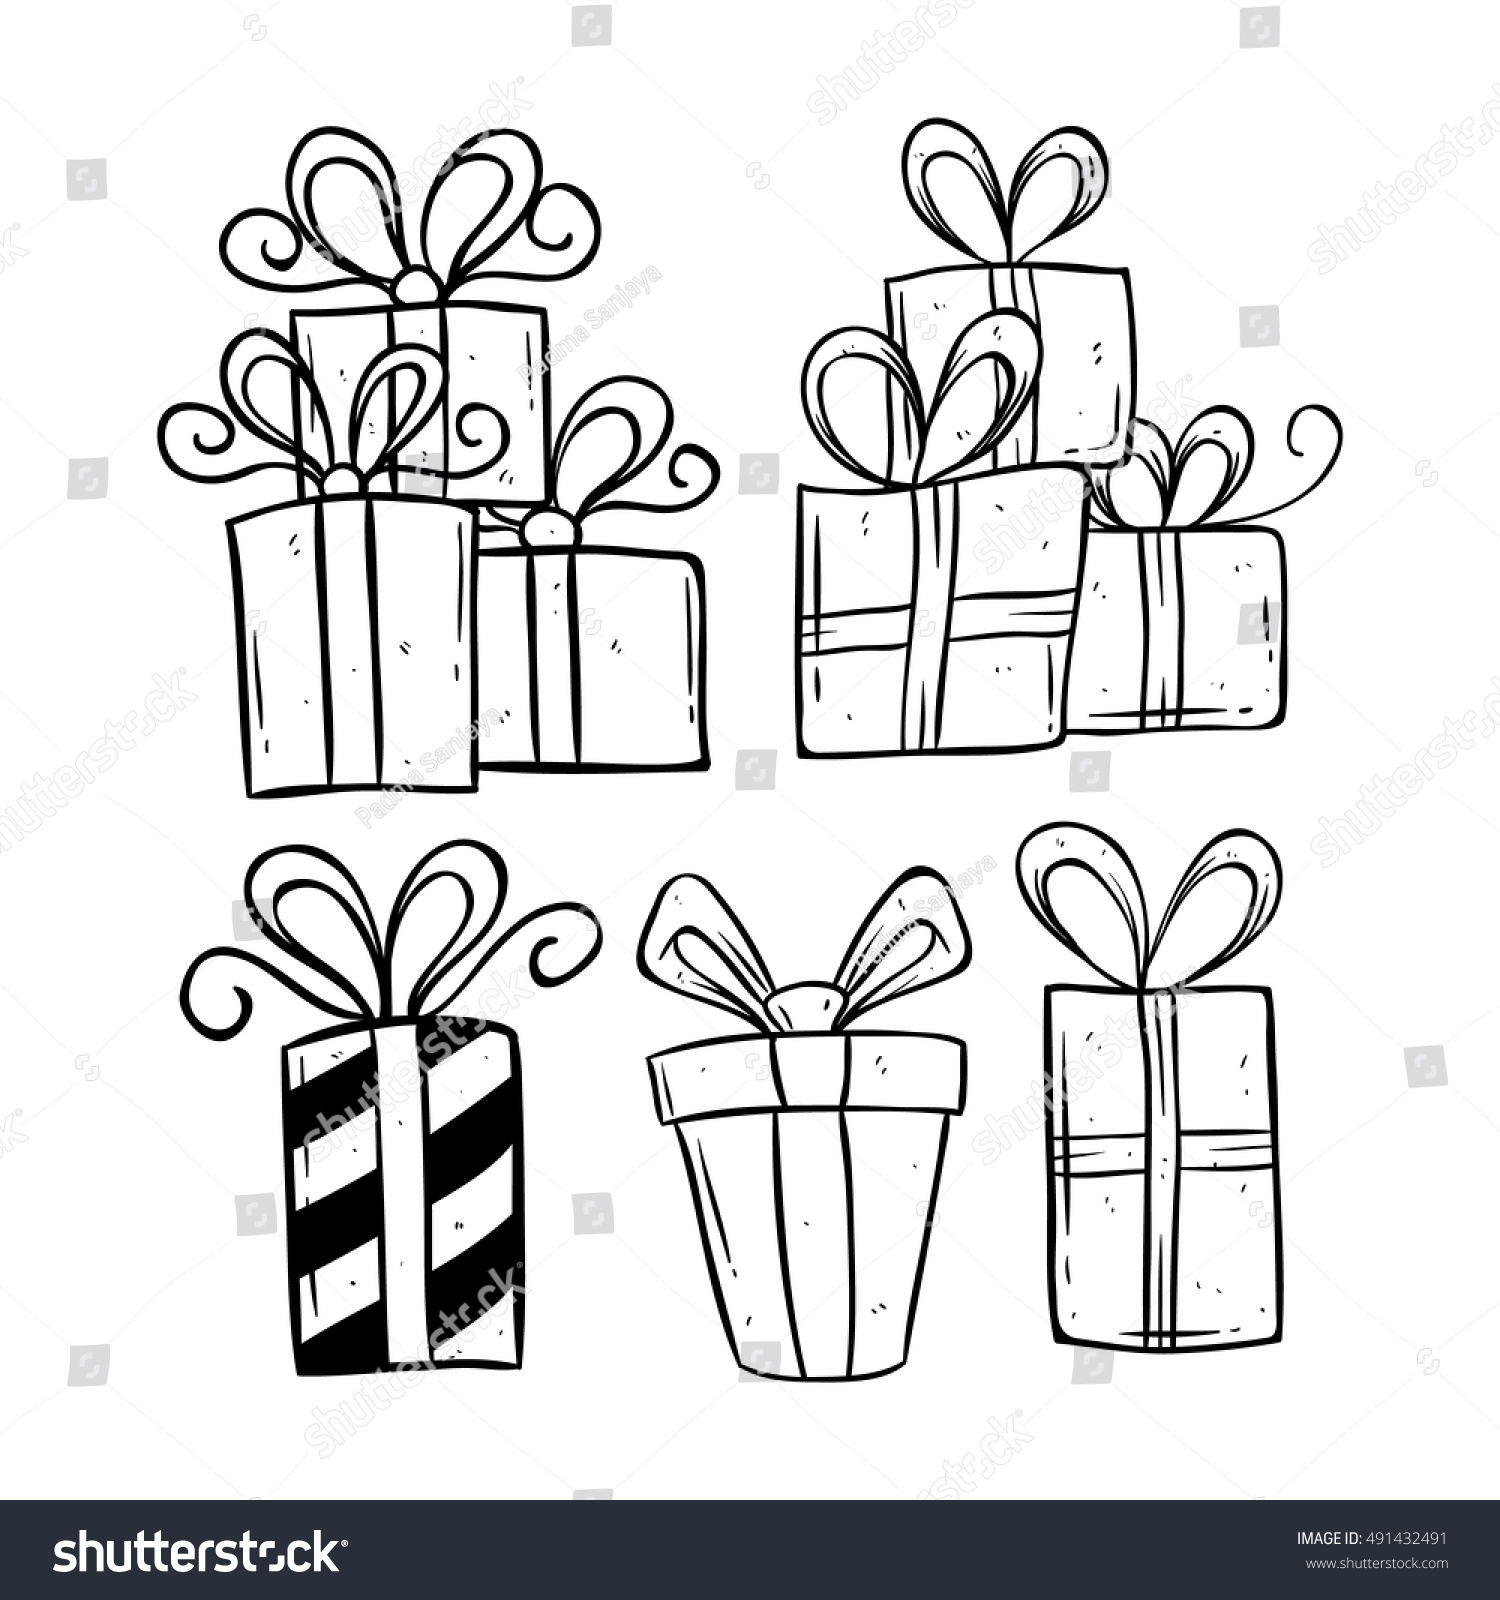 Set birthday gift using doodle art stock vector 491432491 set of birthday gift using doodle art or hand drawing style negle Image collections